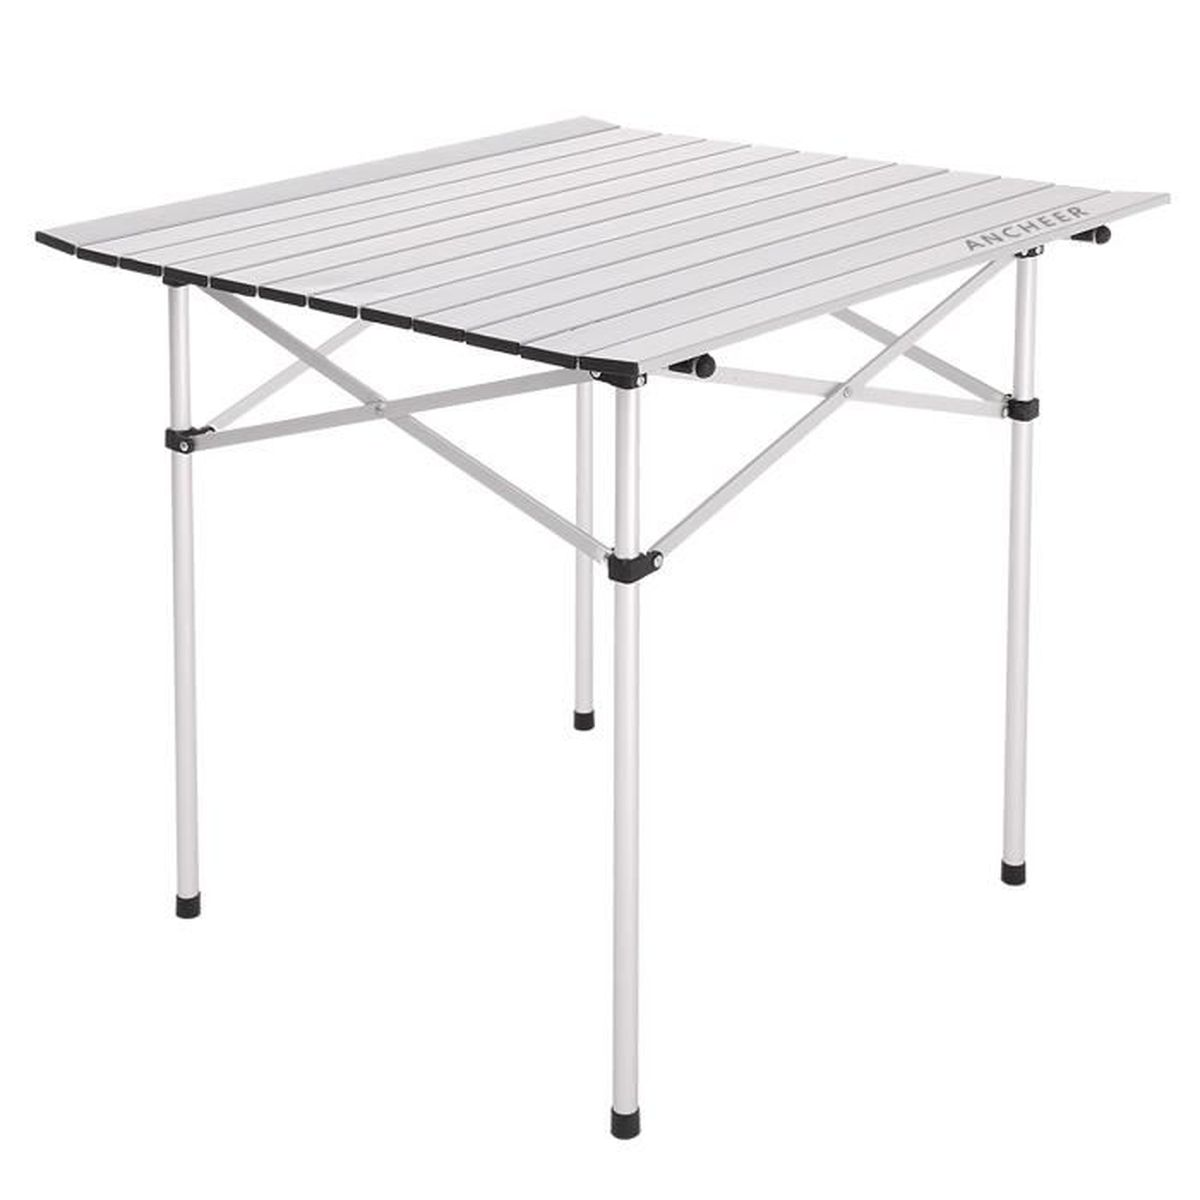 Table de jardin table de pique nique portable aluminium - Table pique nique pliante ...